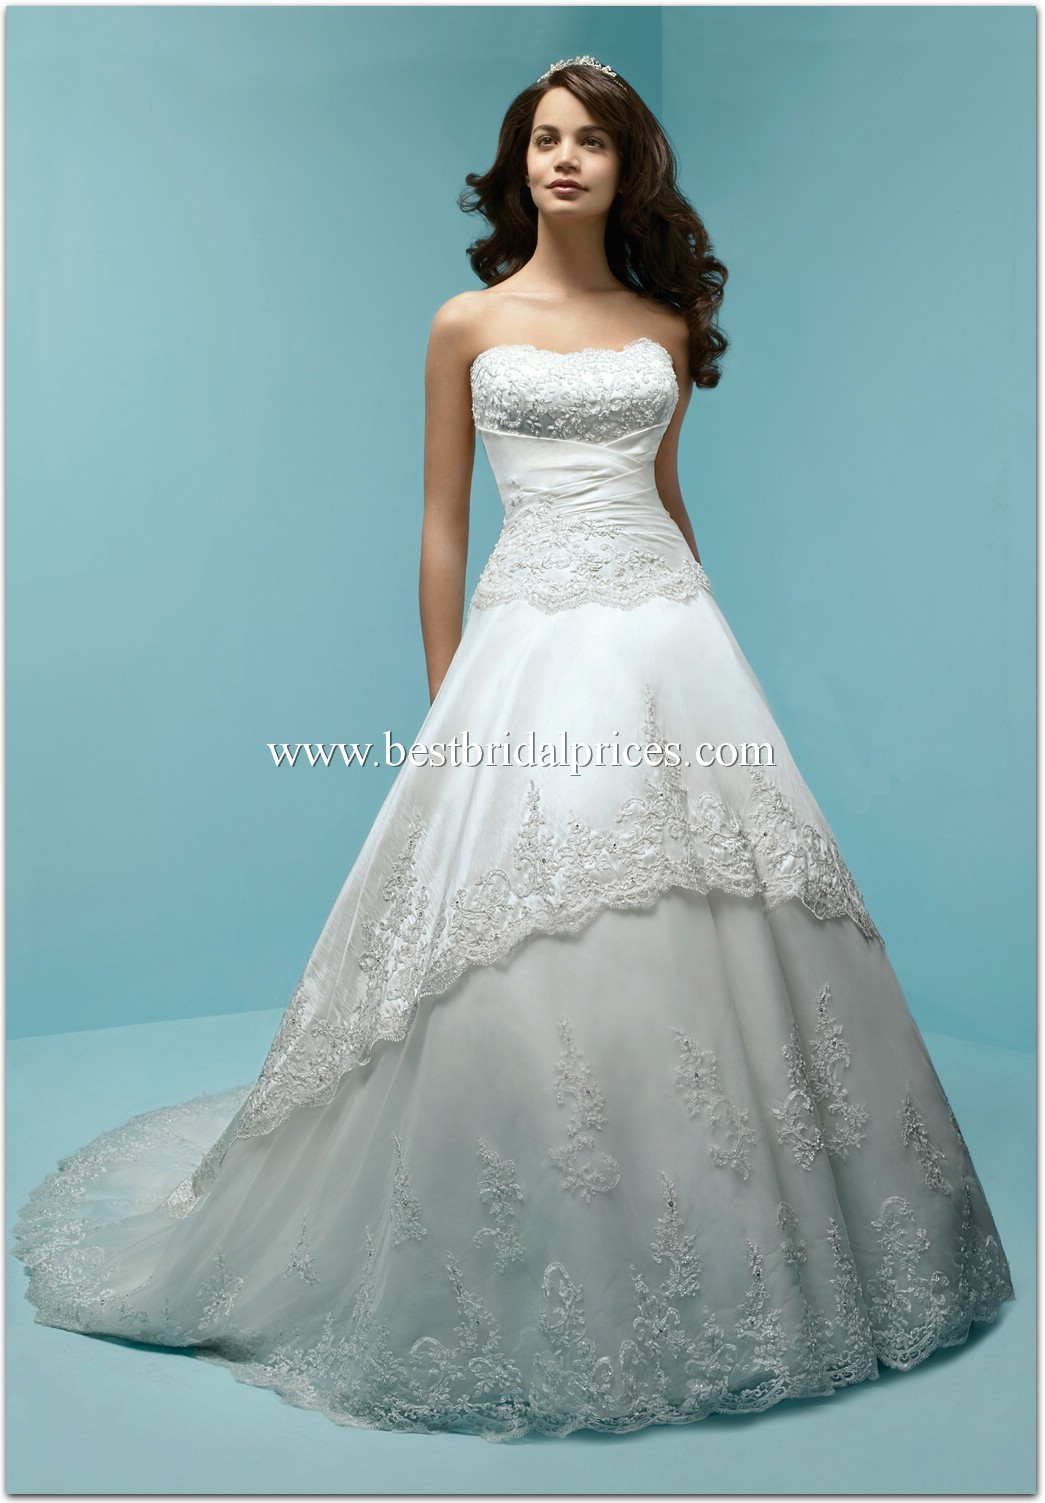 Fancy Faerie Wedding Dresses Picture Collection - All Wedding ...